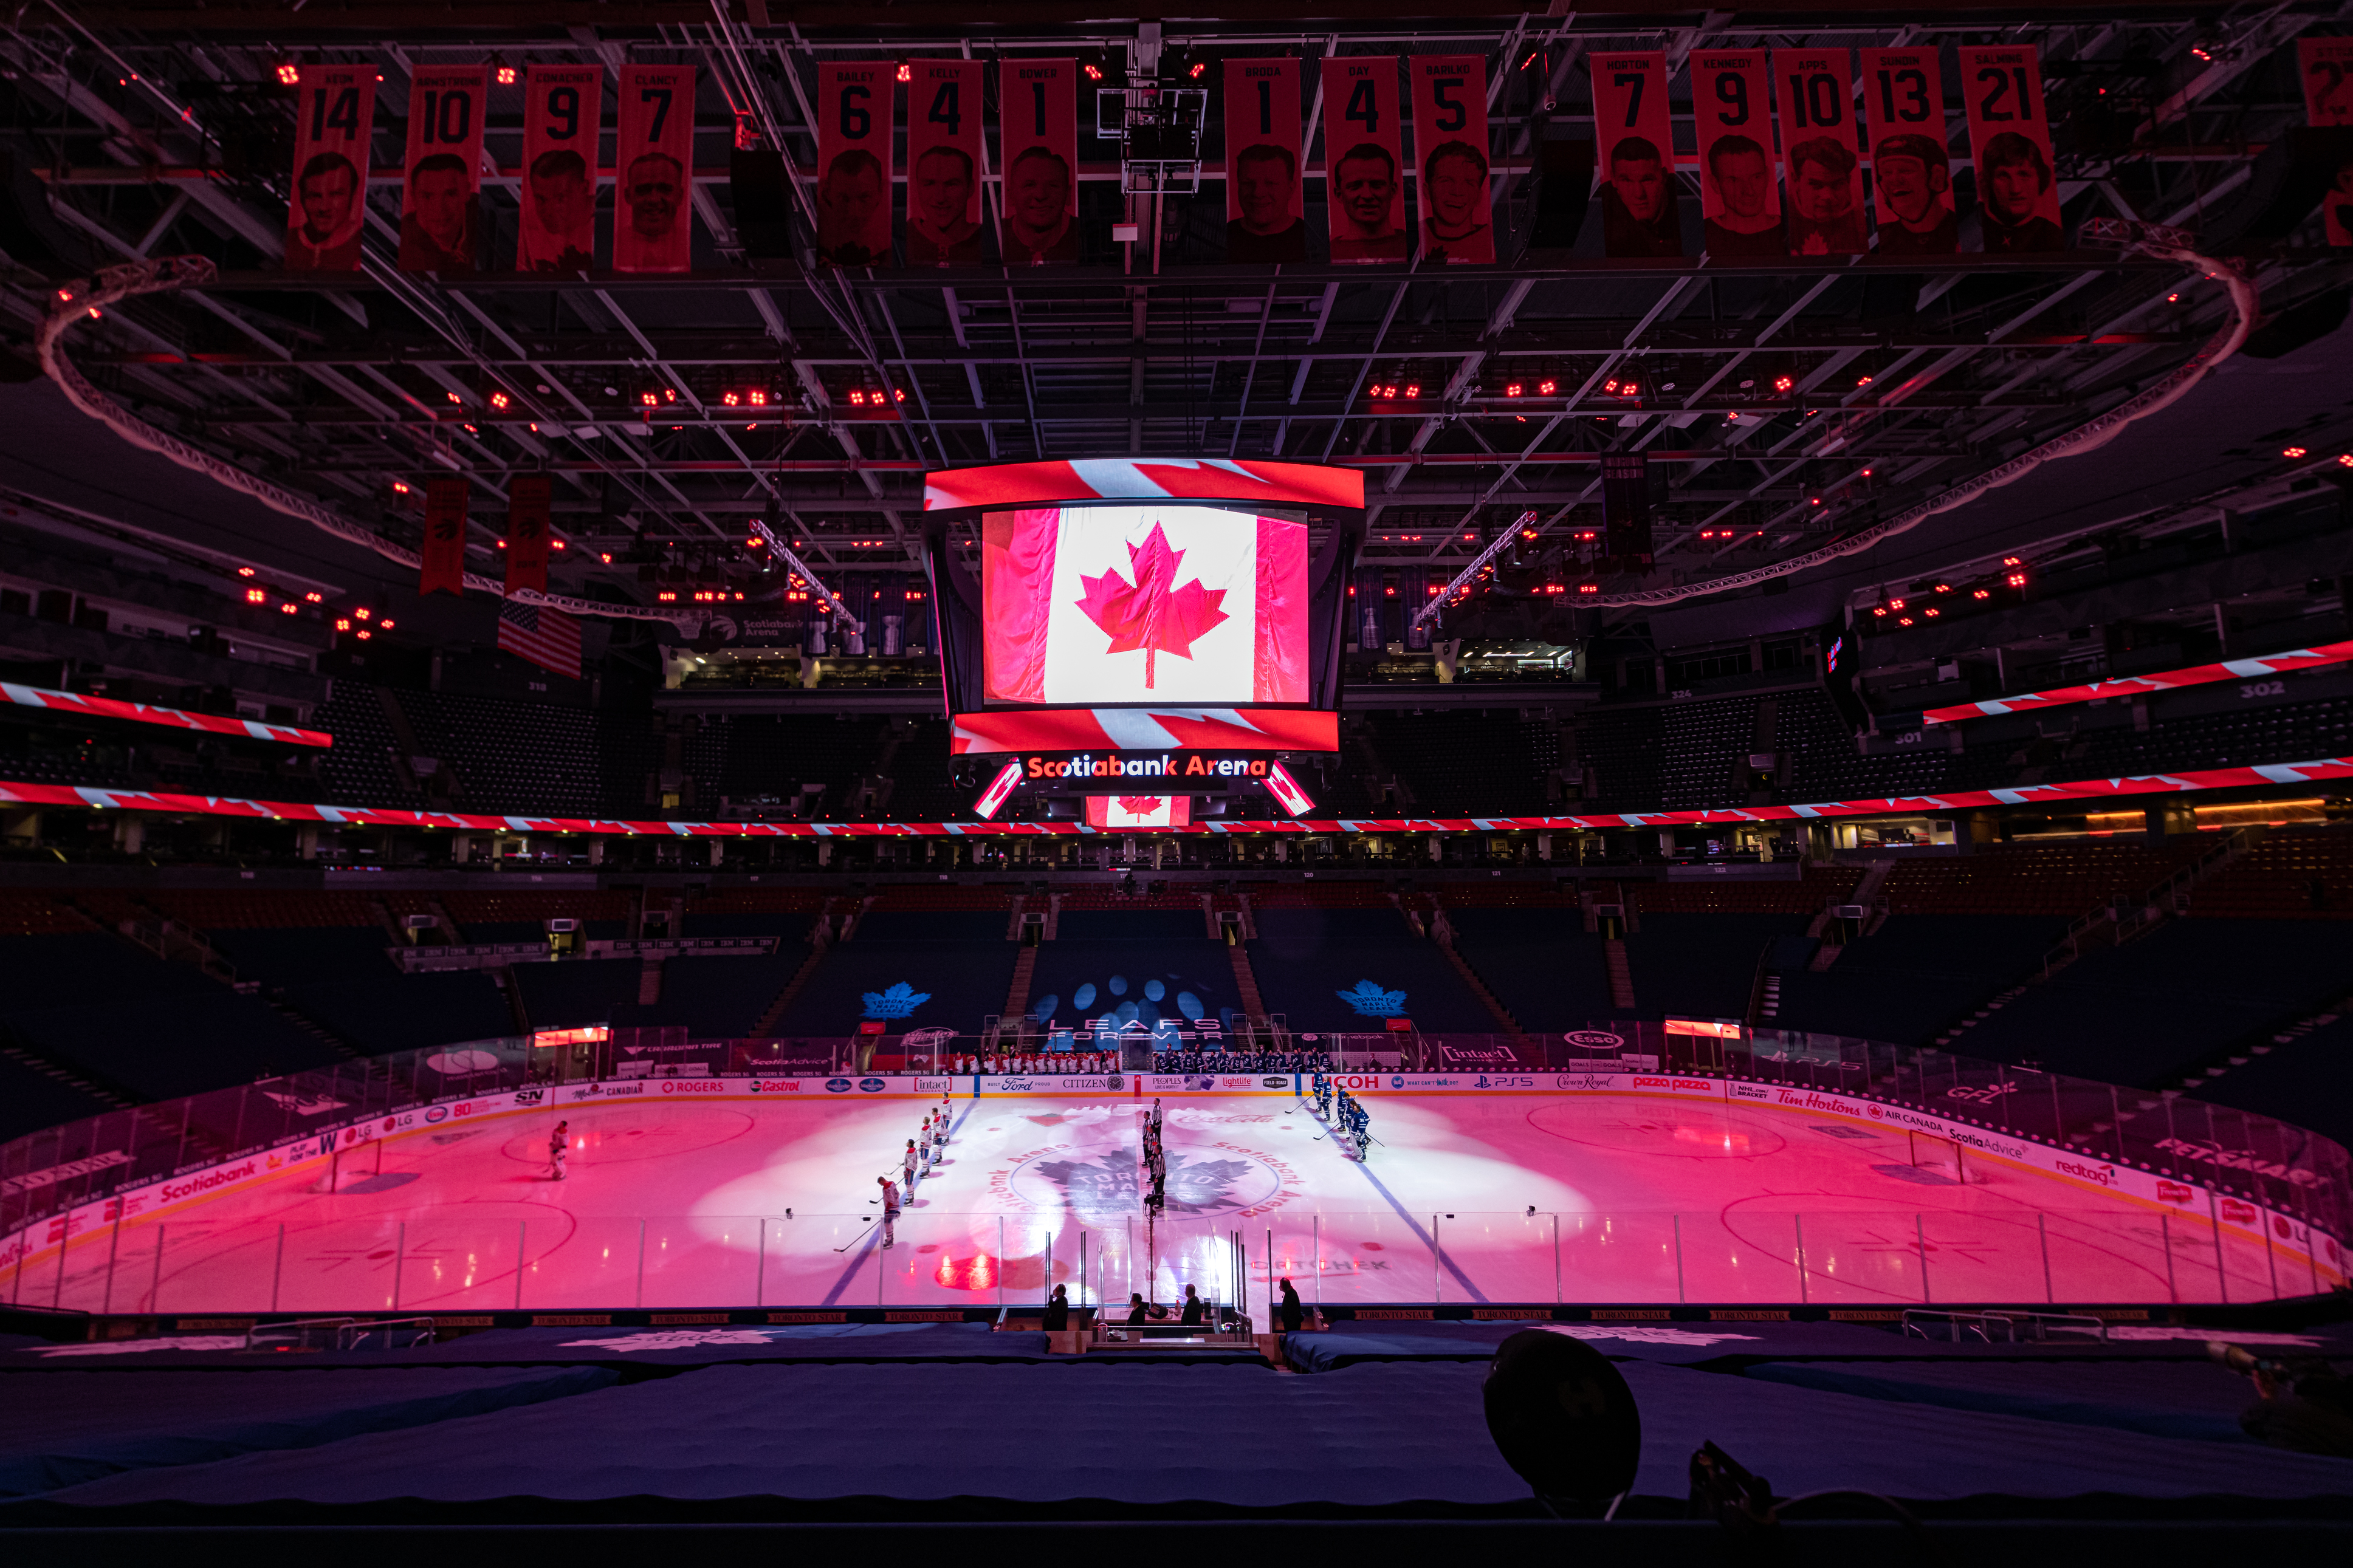 Montreal Canadiens and Toronto Maple Leafs players stand for the Canadian national anthem before the NHL regular season game between the Montreal Canadiens and the Toronto Maple Leafs on May 8, 2021, at Scotiabank Arena in Toronto, ON, Canada.